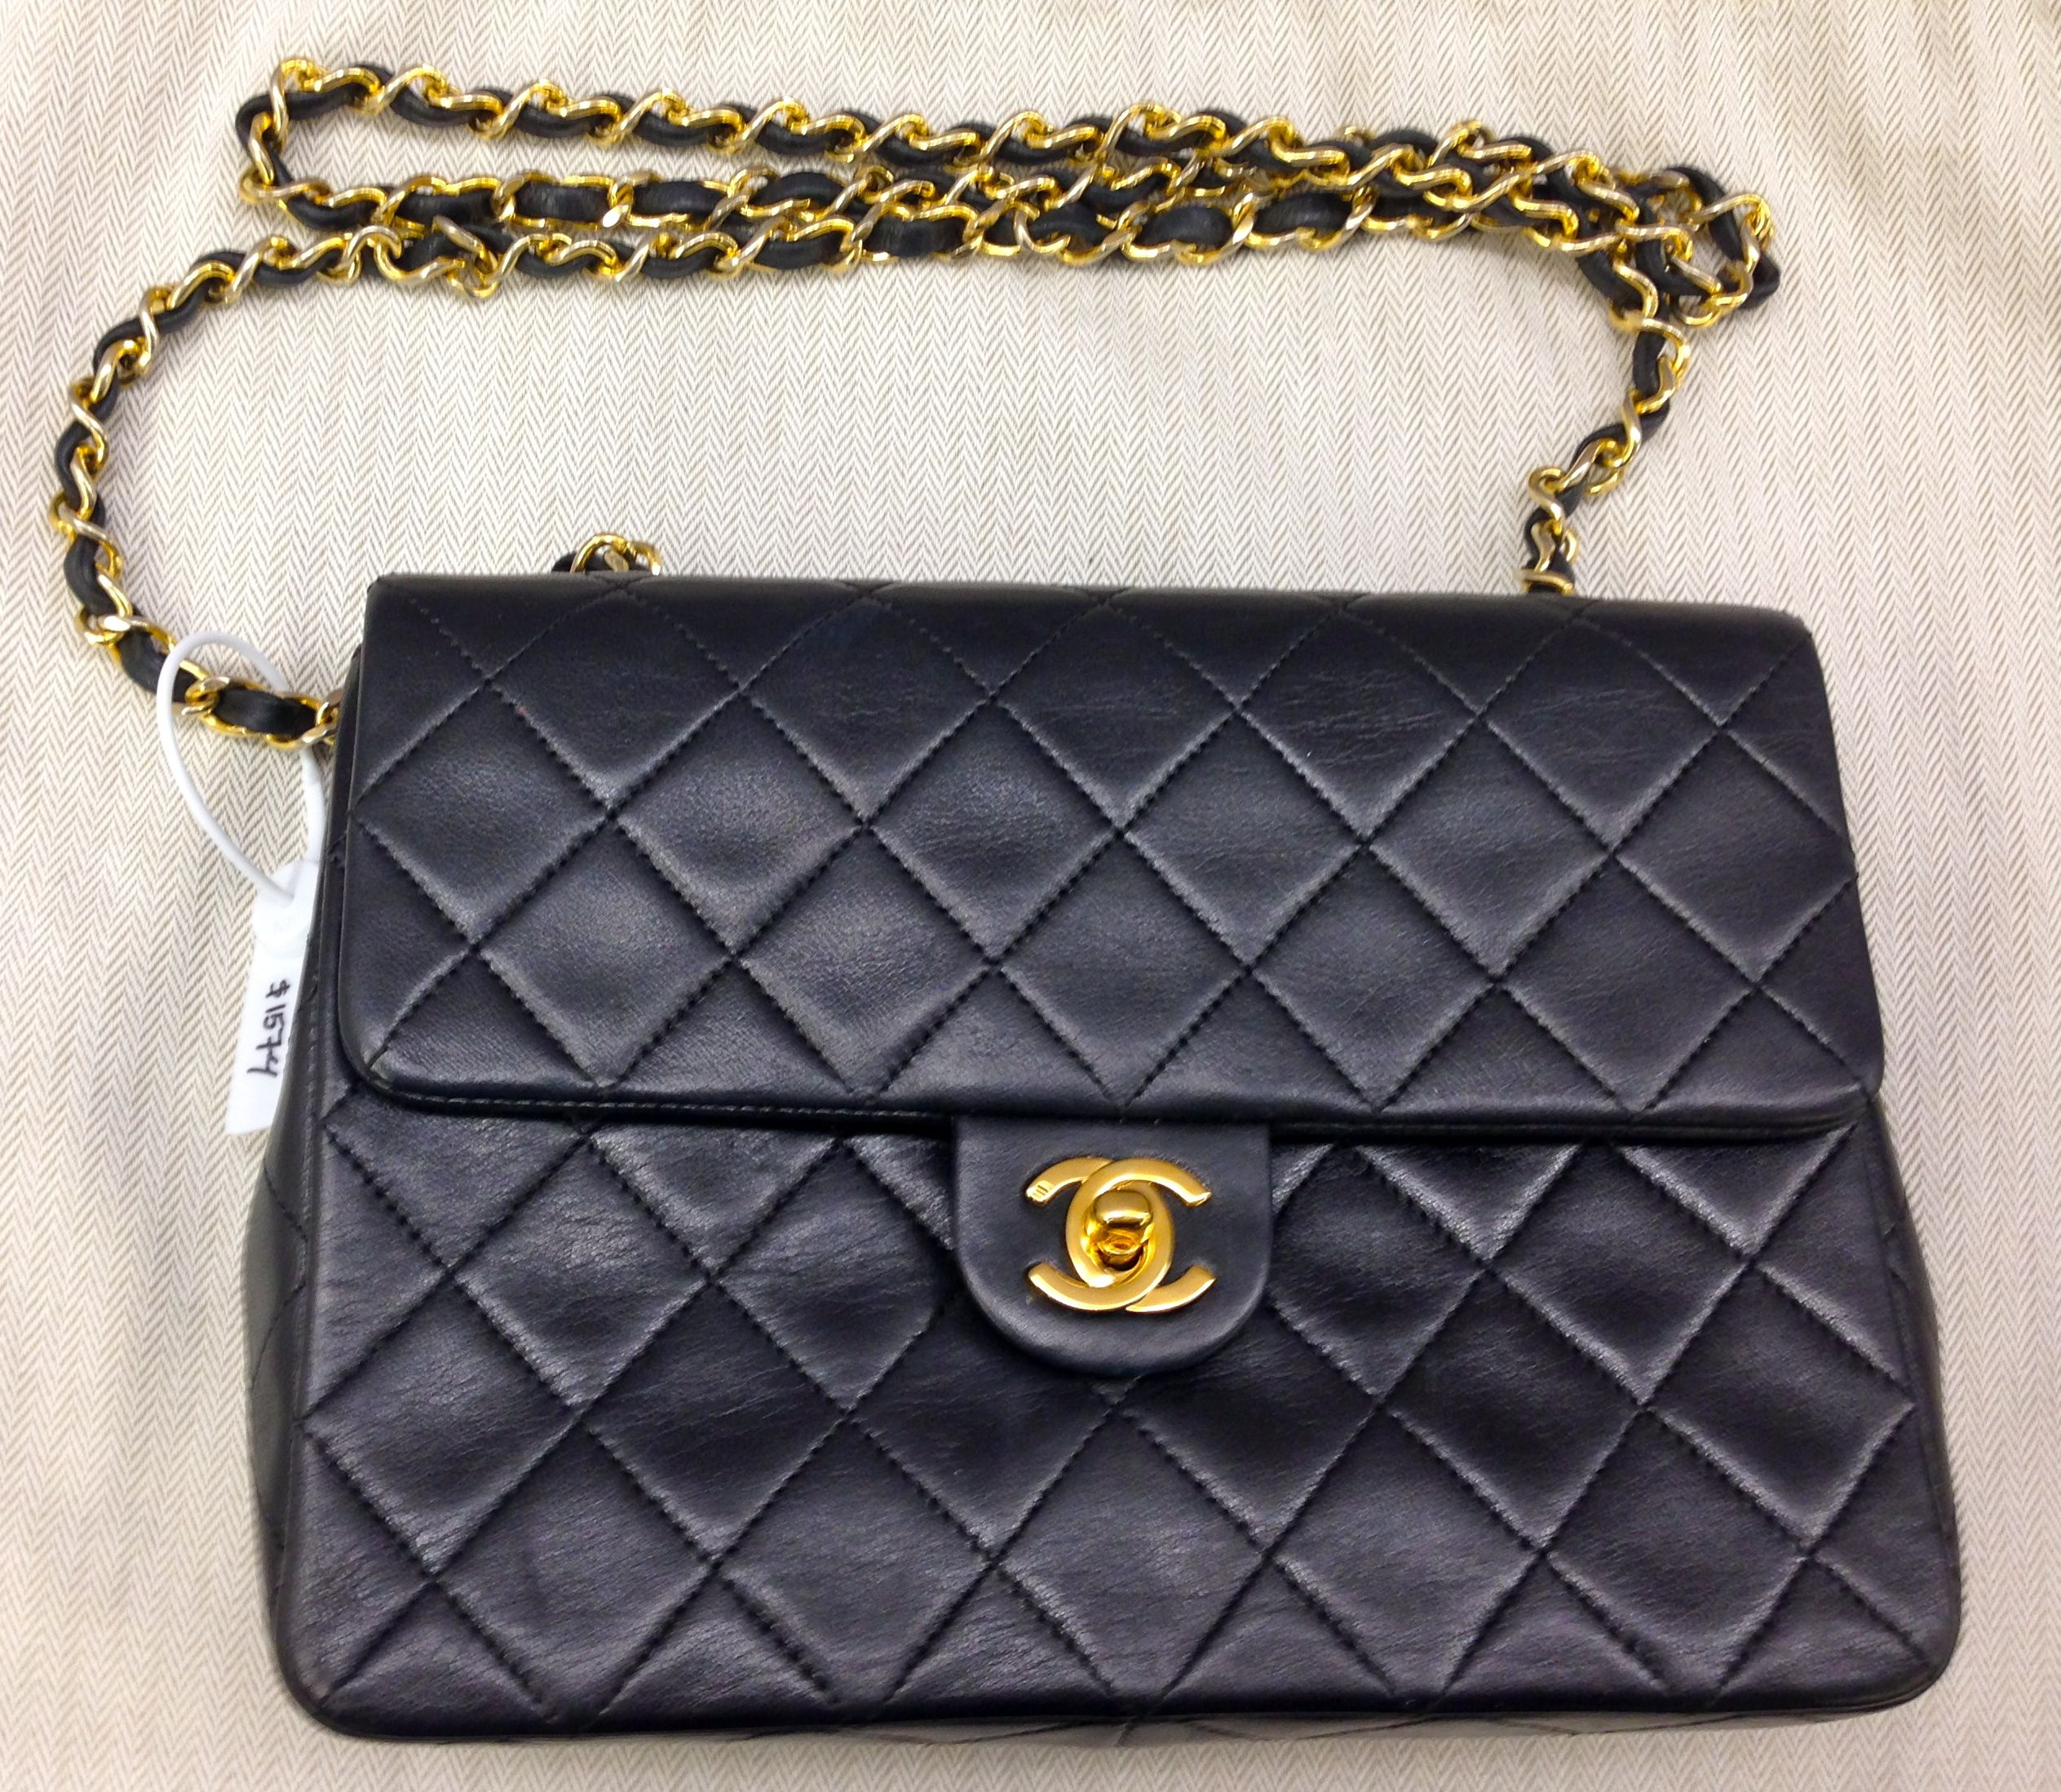 Chanel Handbags: How to Tell if It's Real or Fake